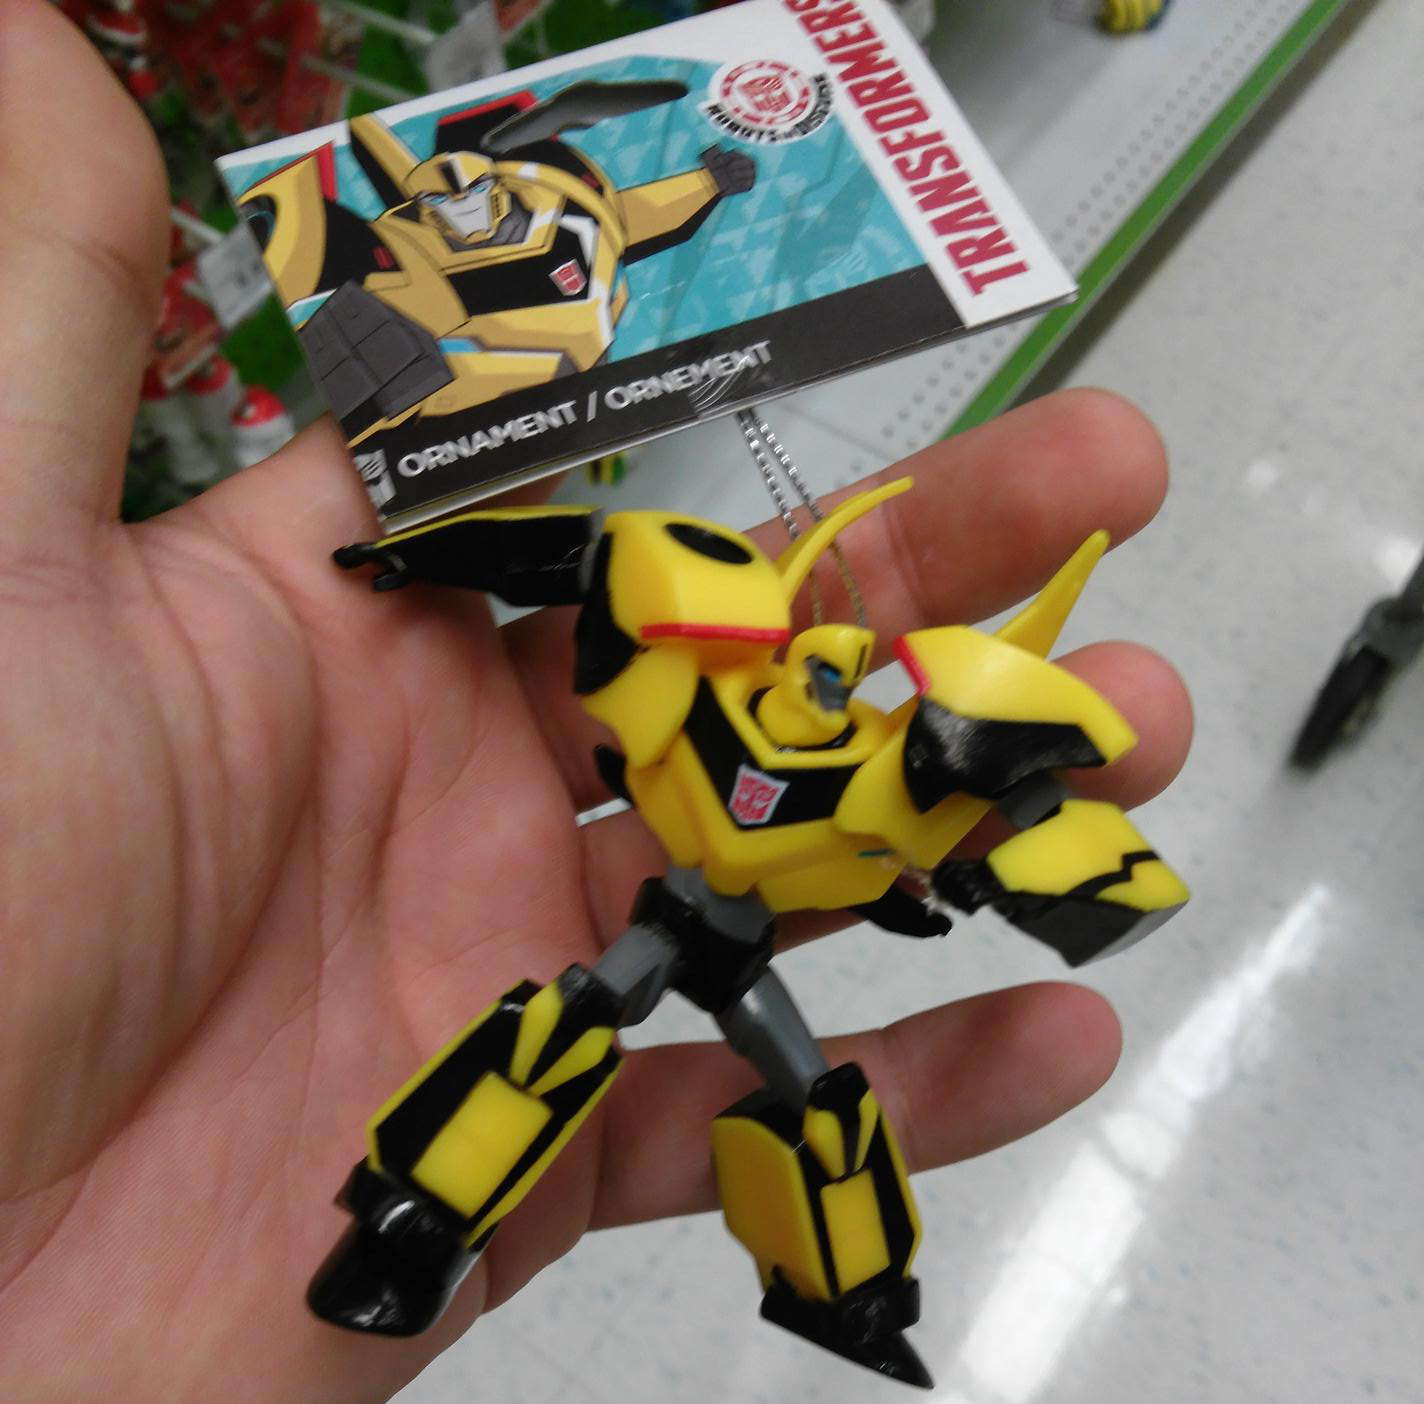 Transformers Robots In Disguise Bumblebee Ornament Found Retail